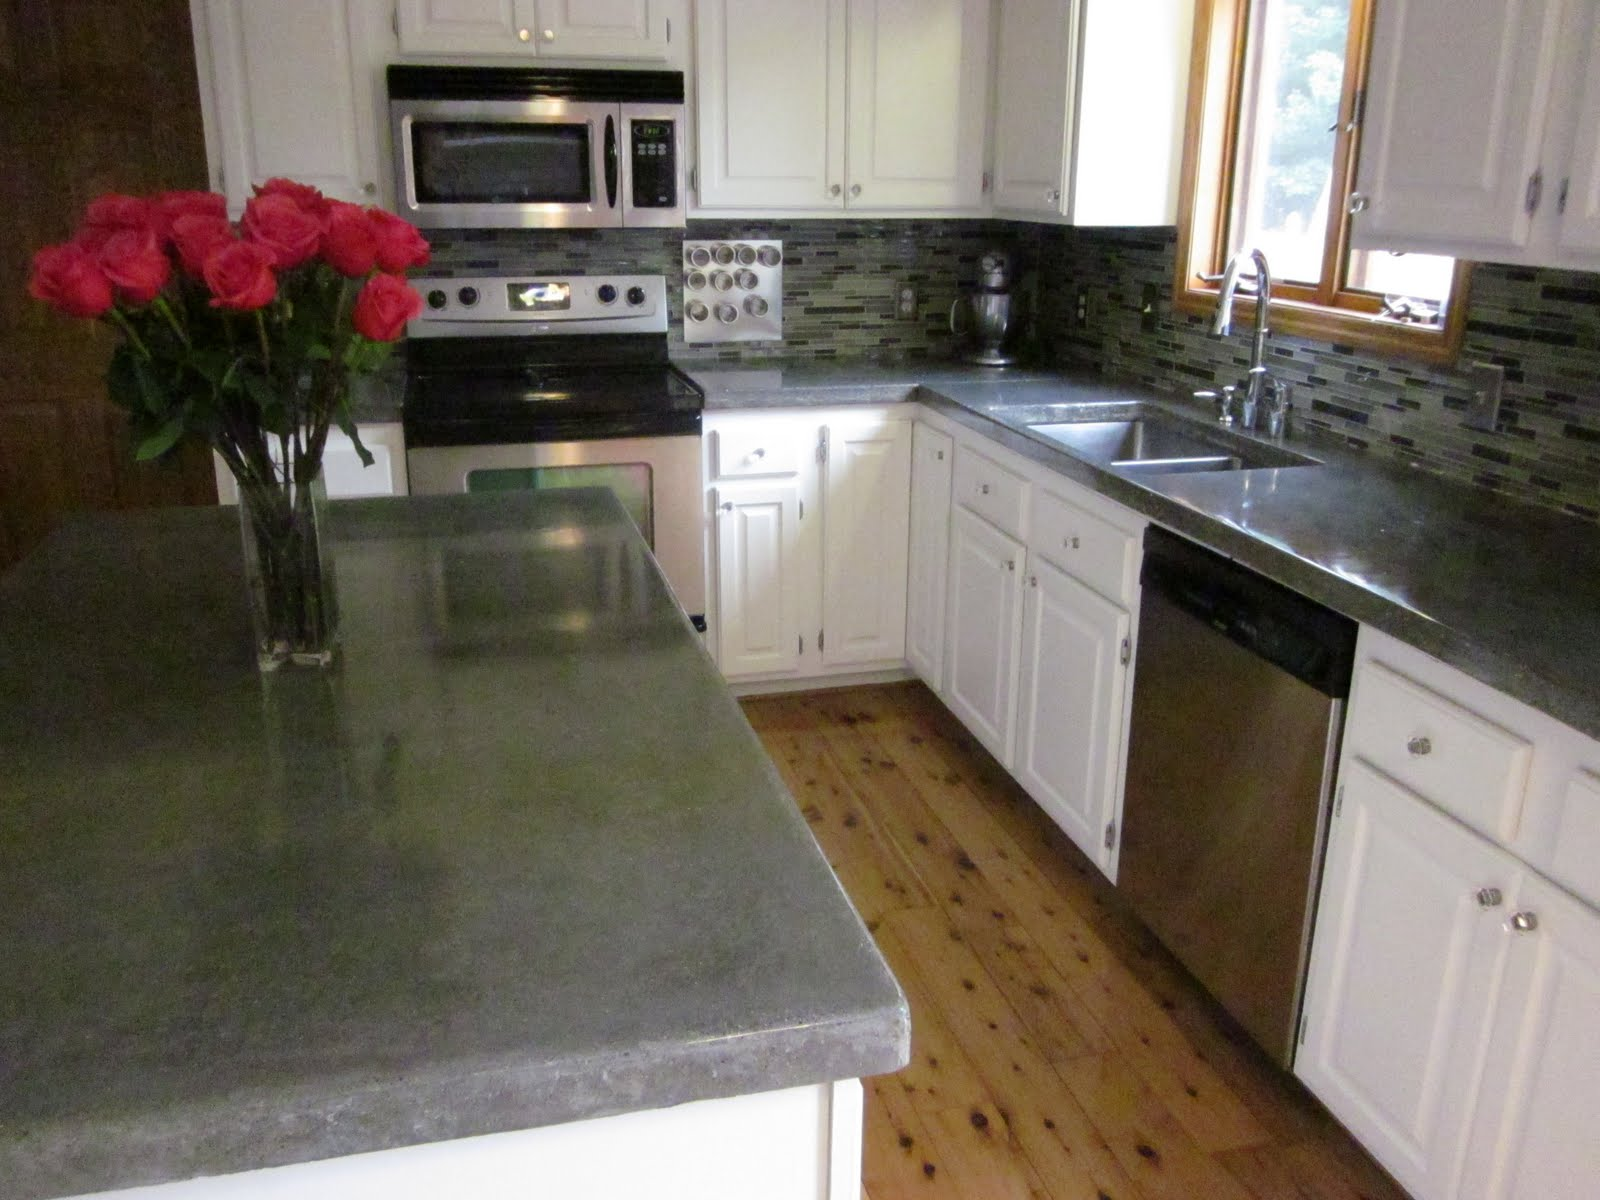 nw countertop inc countertops kitchen concreteworks ideas outdoor or home mayfield design essentials concrete